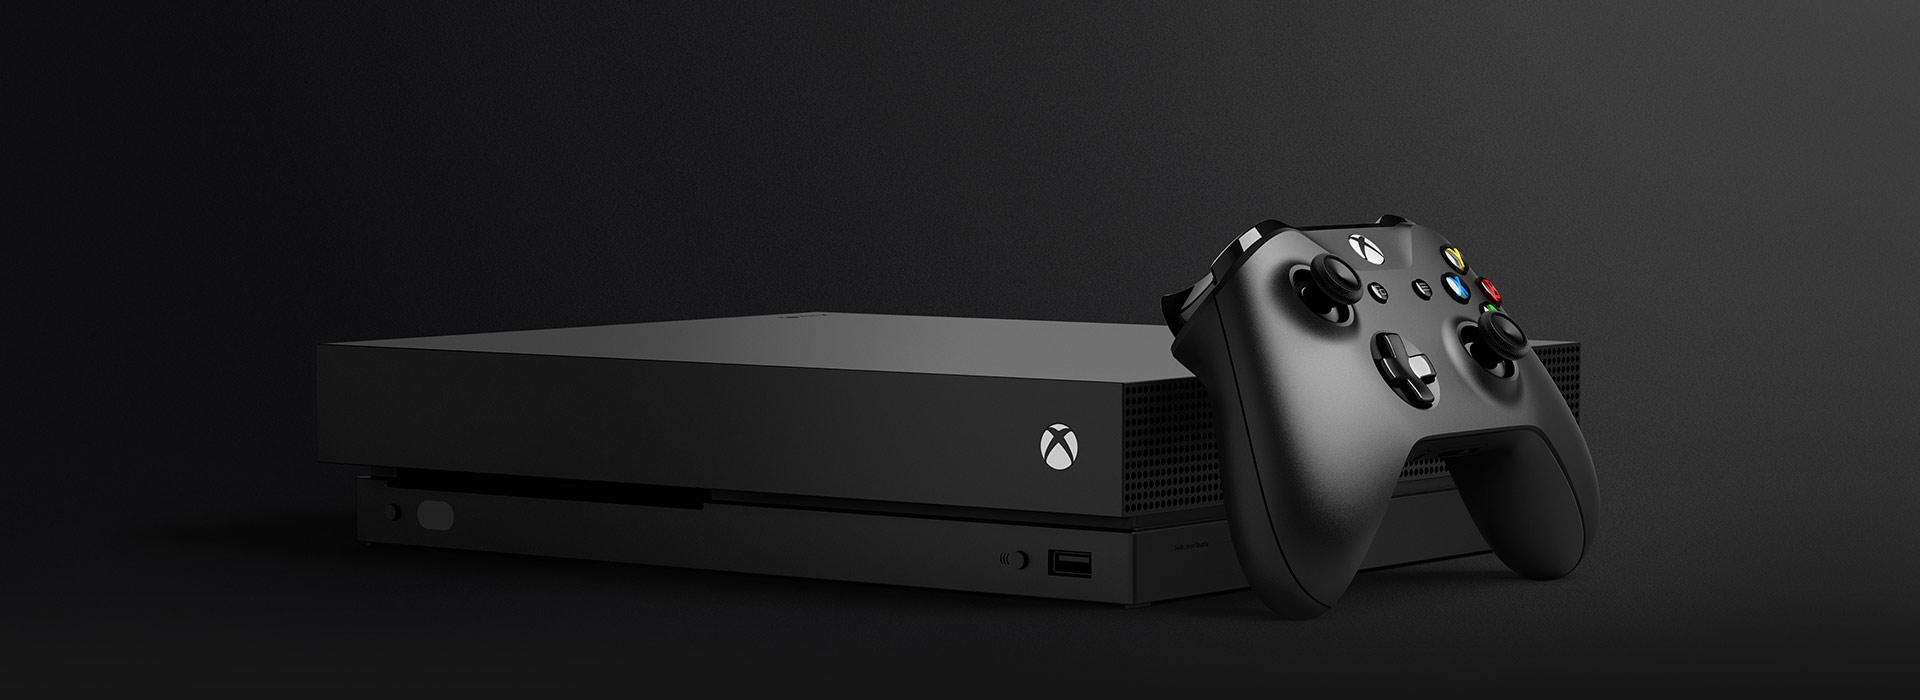 Xbox One X con un controller wireless per Xbox One